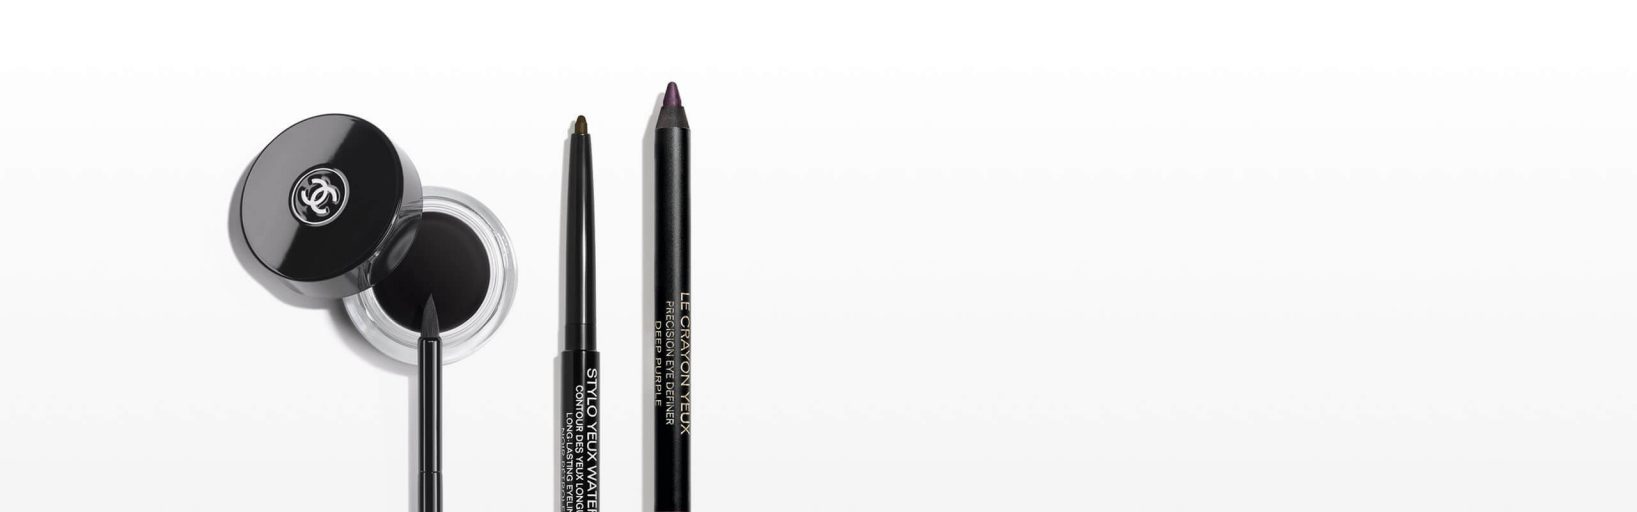 Lip Pencils - CHANEL